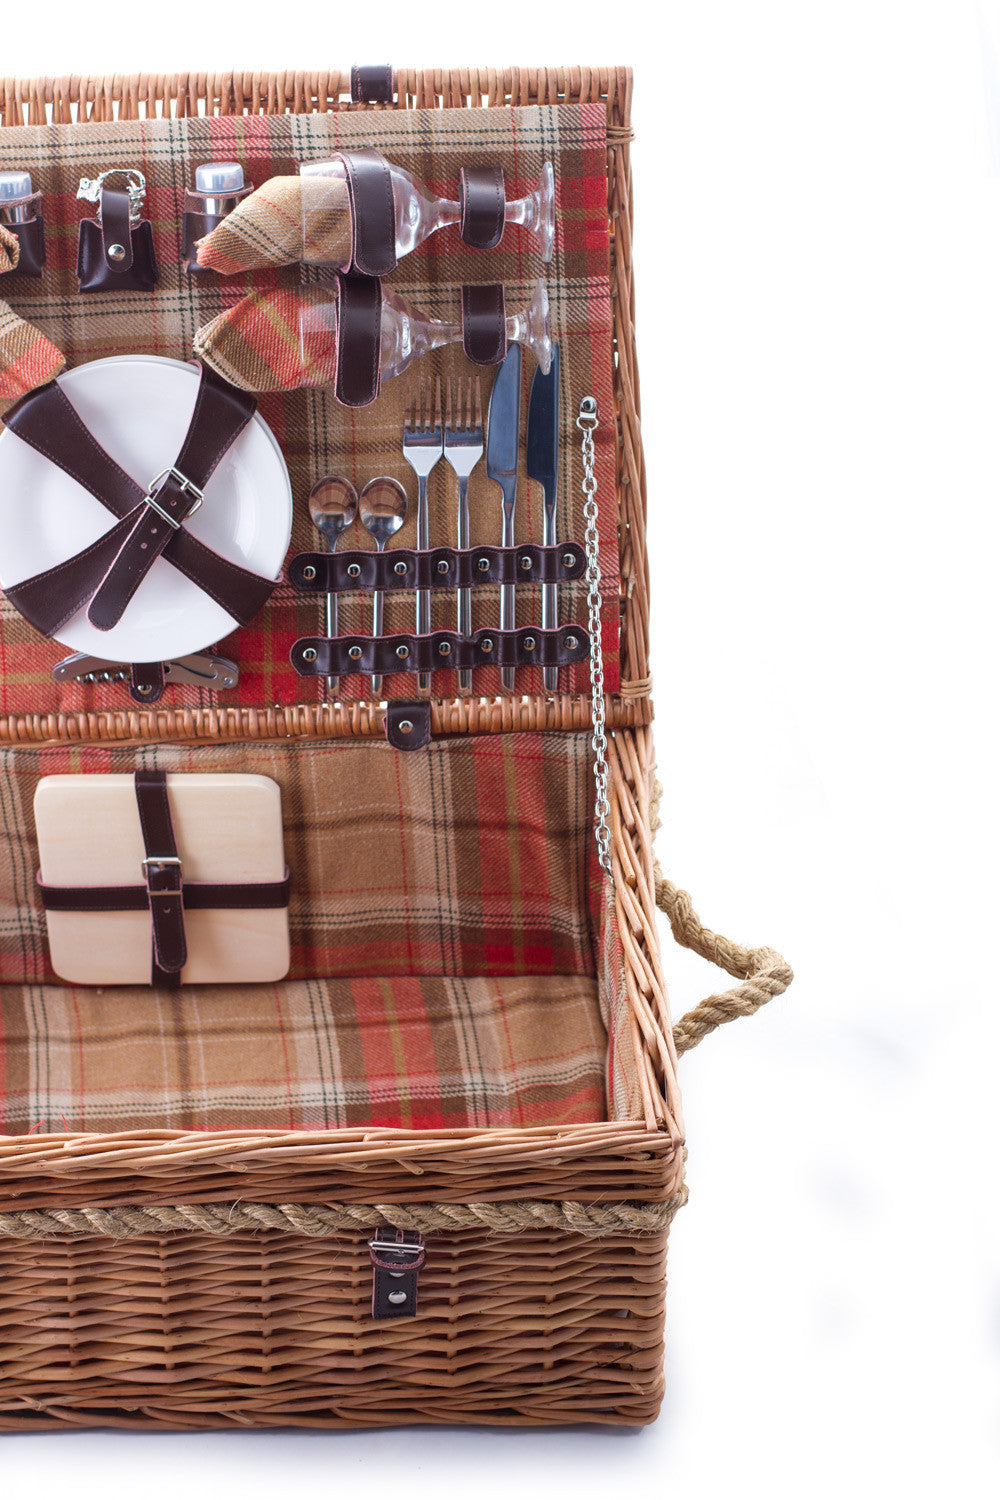 Amber red tartan wicker hamper for six Complete with blanket, cutlery, plates and chiller bag. Now comes with personalisation. Exclusive to Eaton Hampers and Basketeware